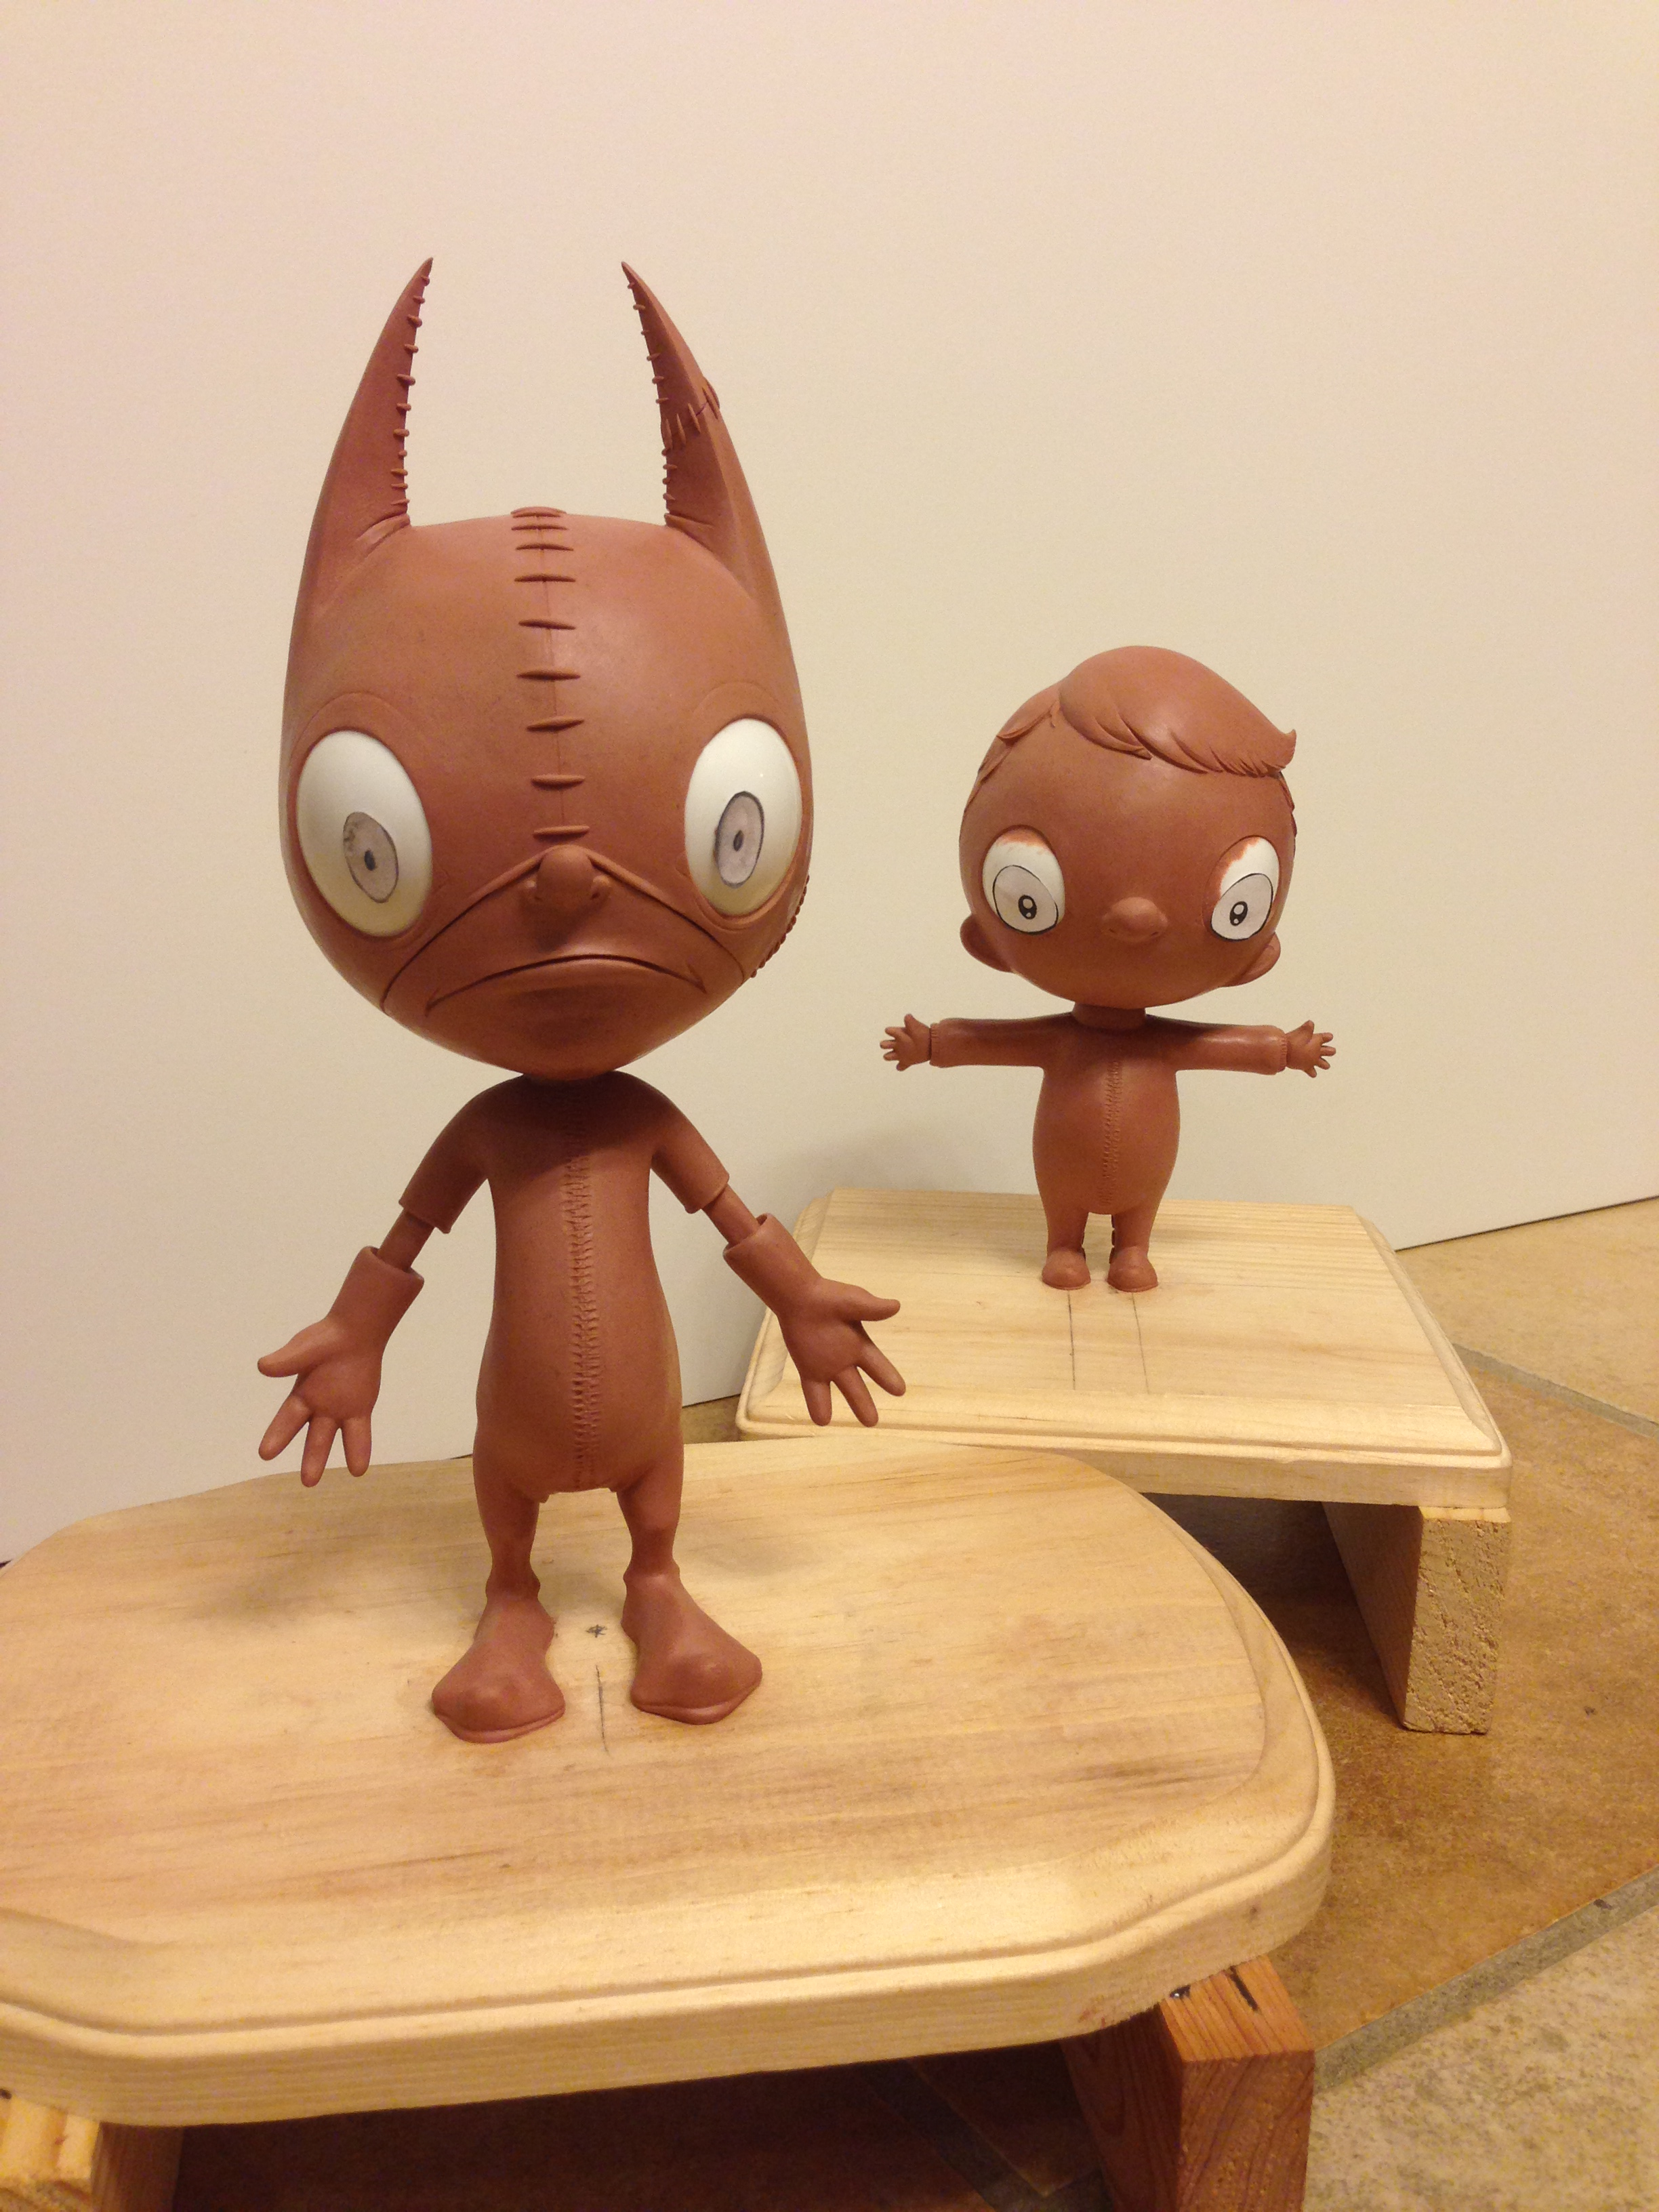 Ralf and Crumbs, sculpted in clay.